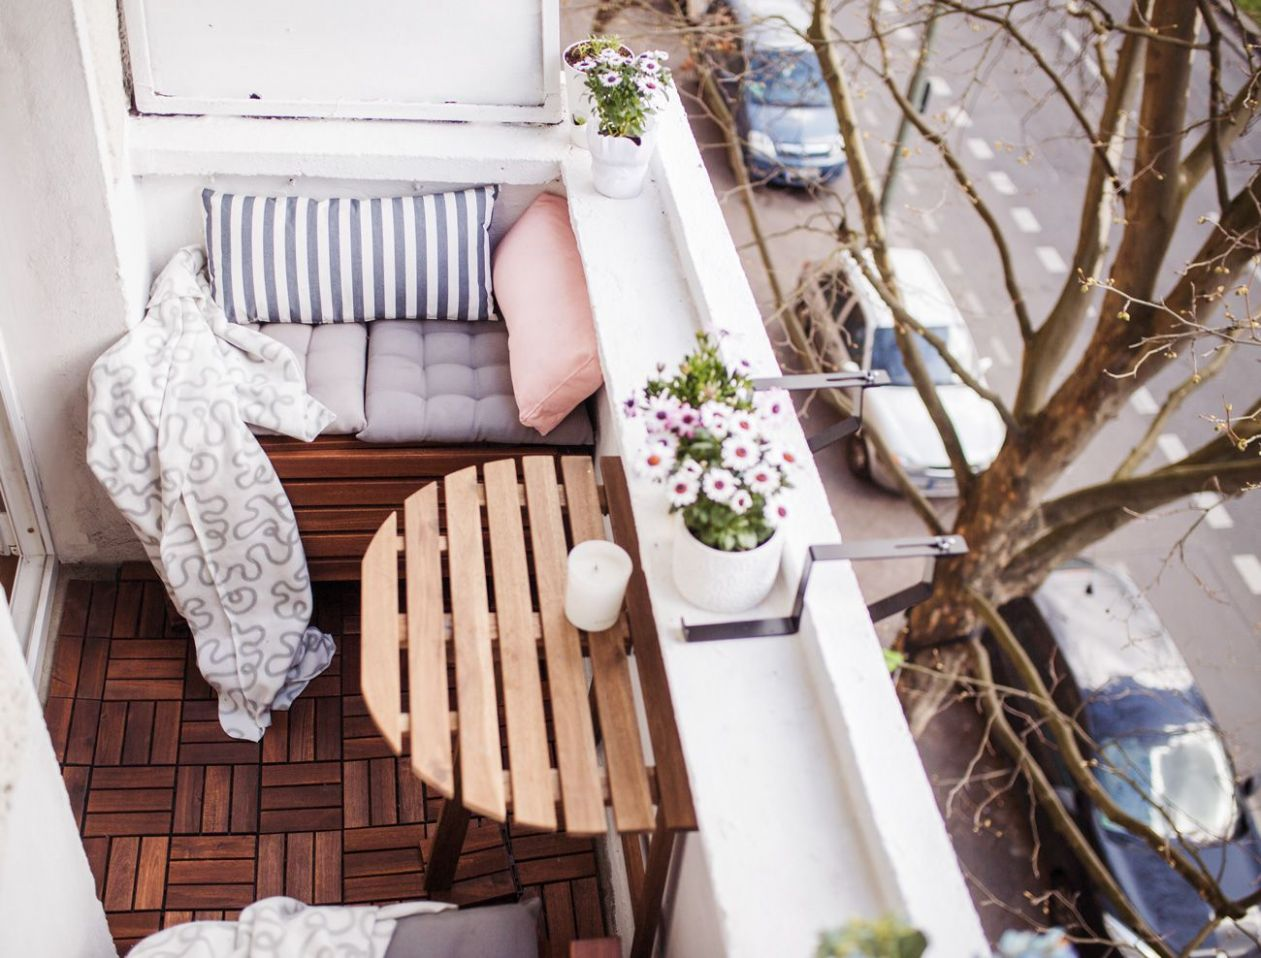 8 Ways to Make the Most of Your Tiny Apartment Balcony